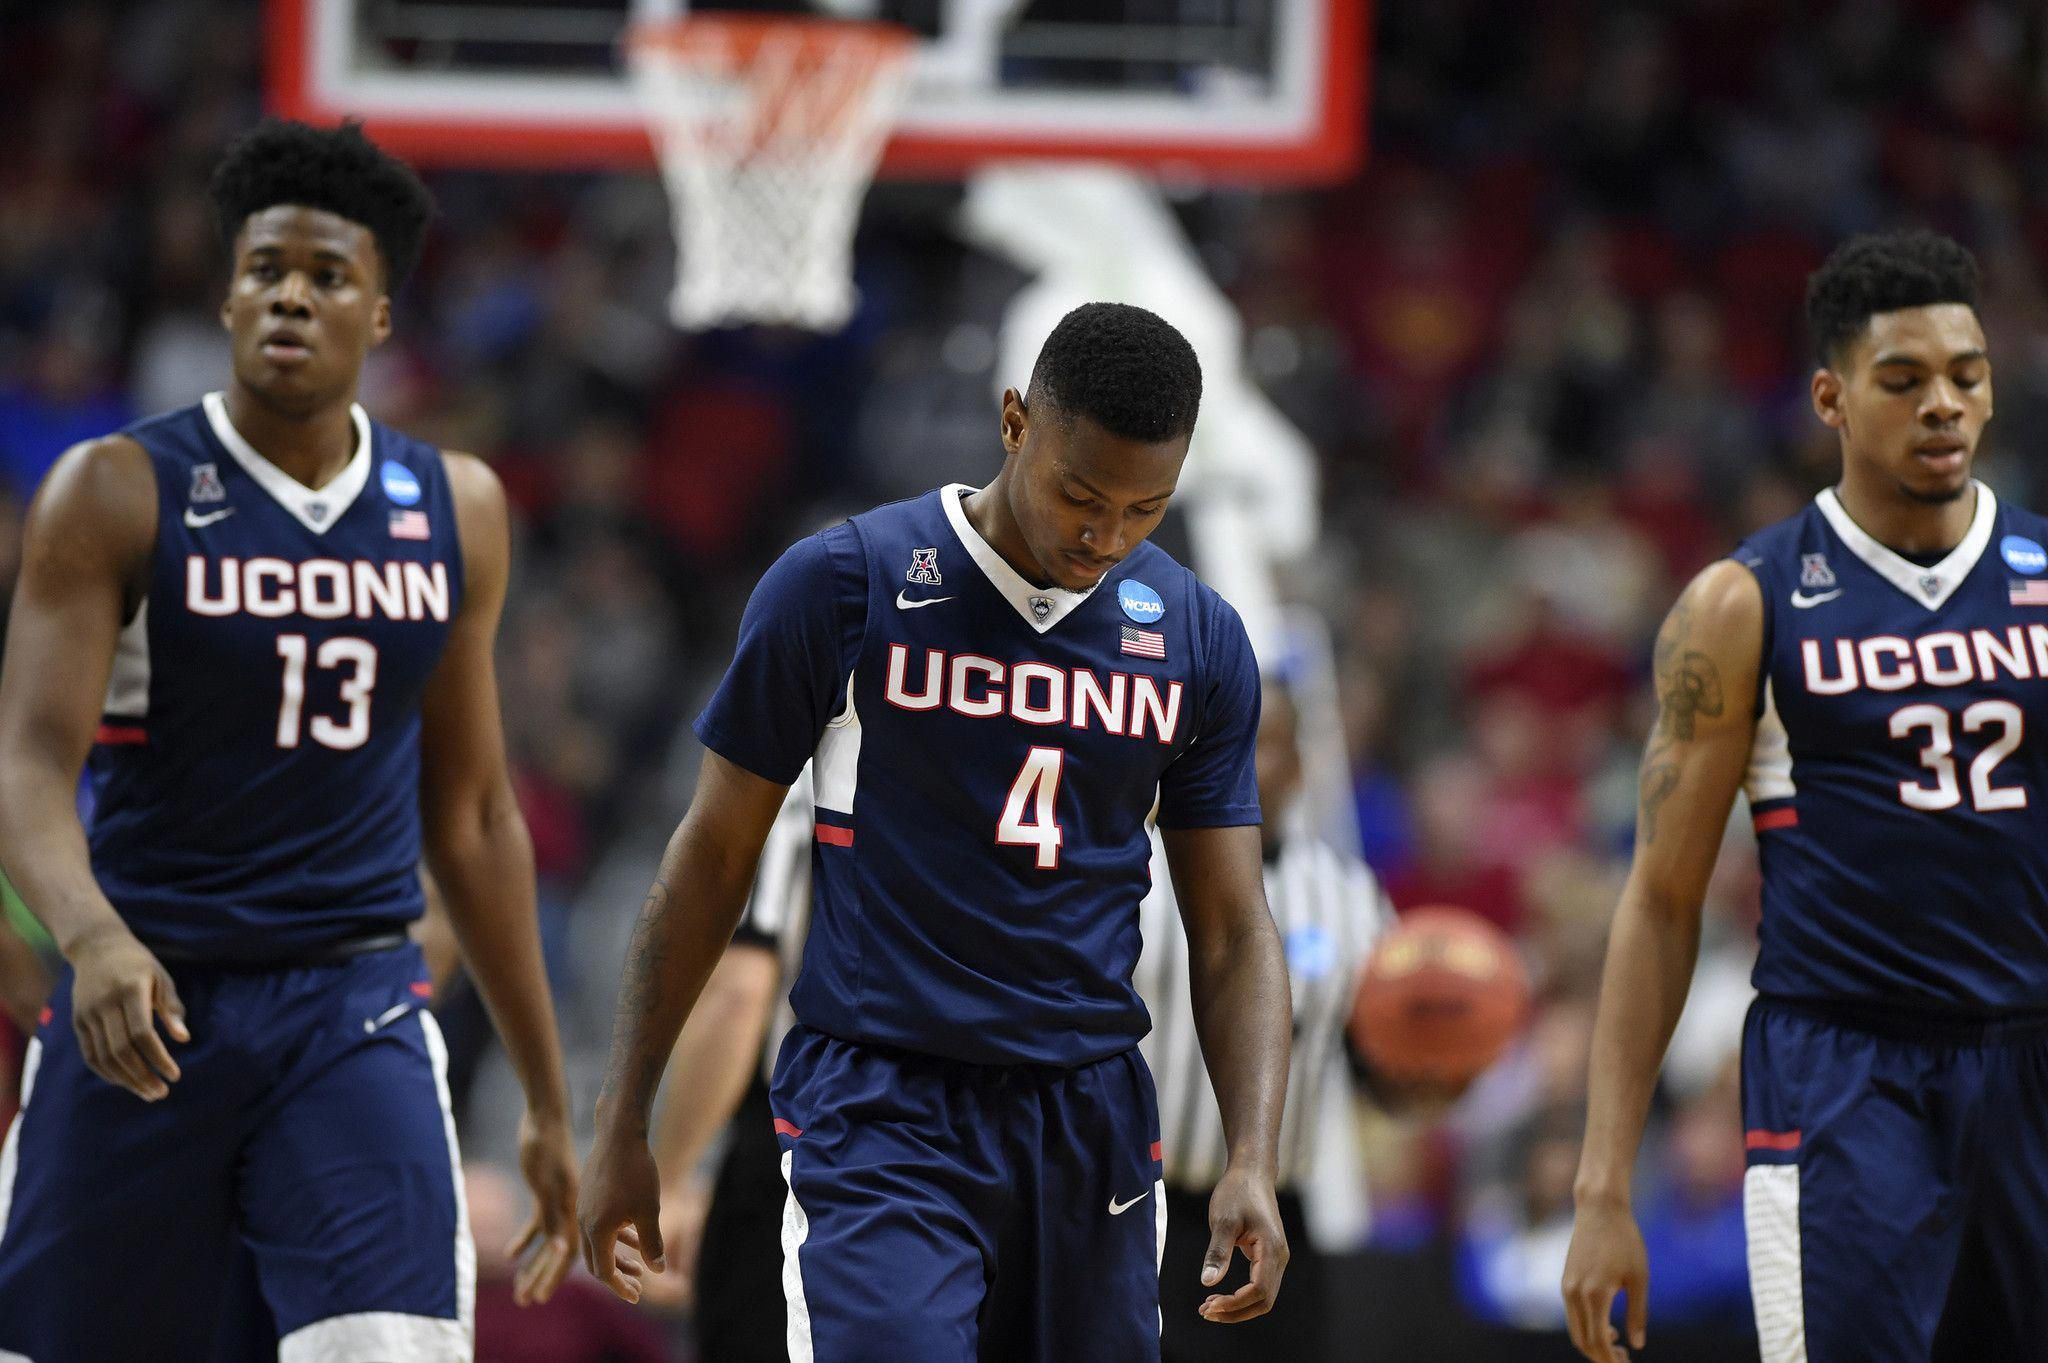 the uconn men's basketball team is putting the finishing touches on